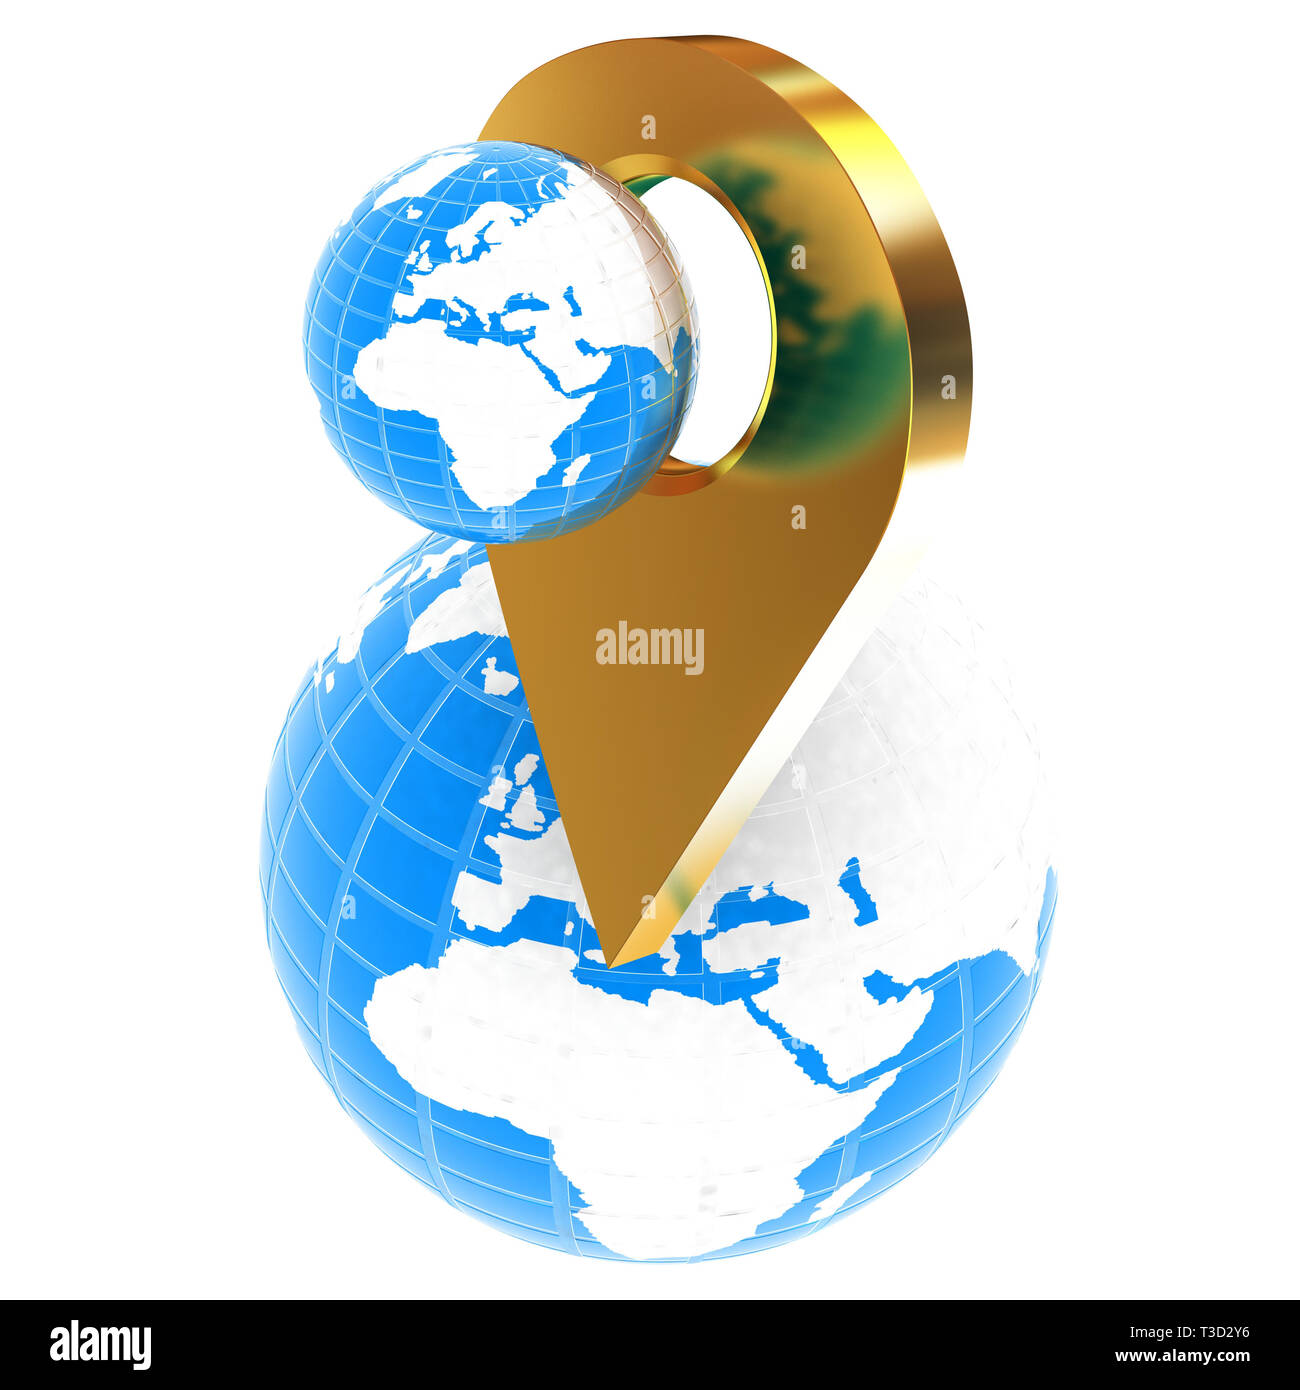 Planet Earth and golden map pins icon on Earth. 3d illustration. - Stock Image